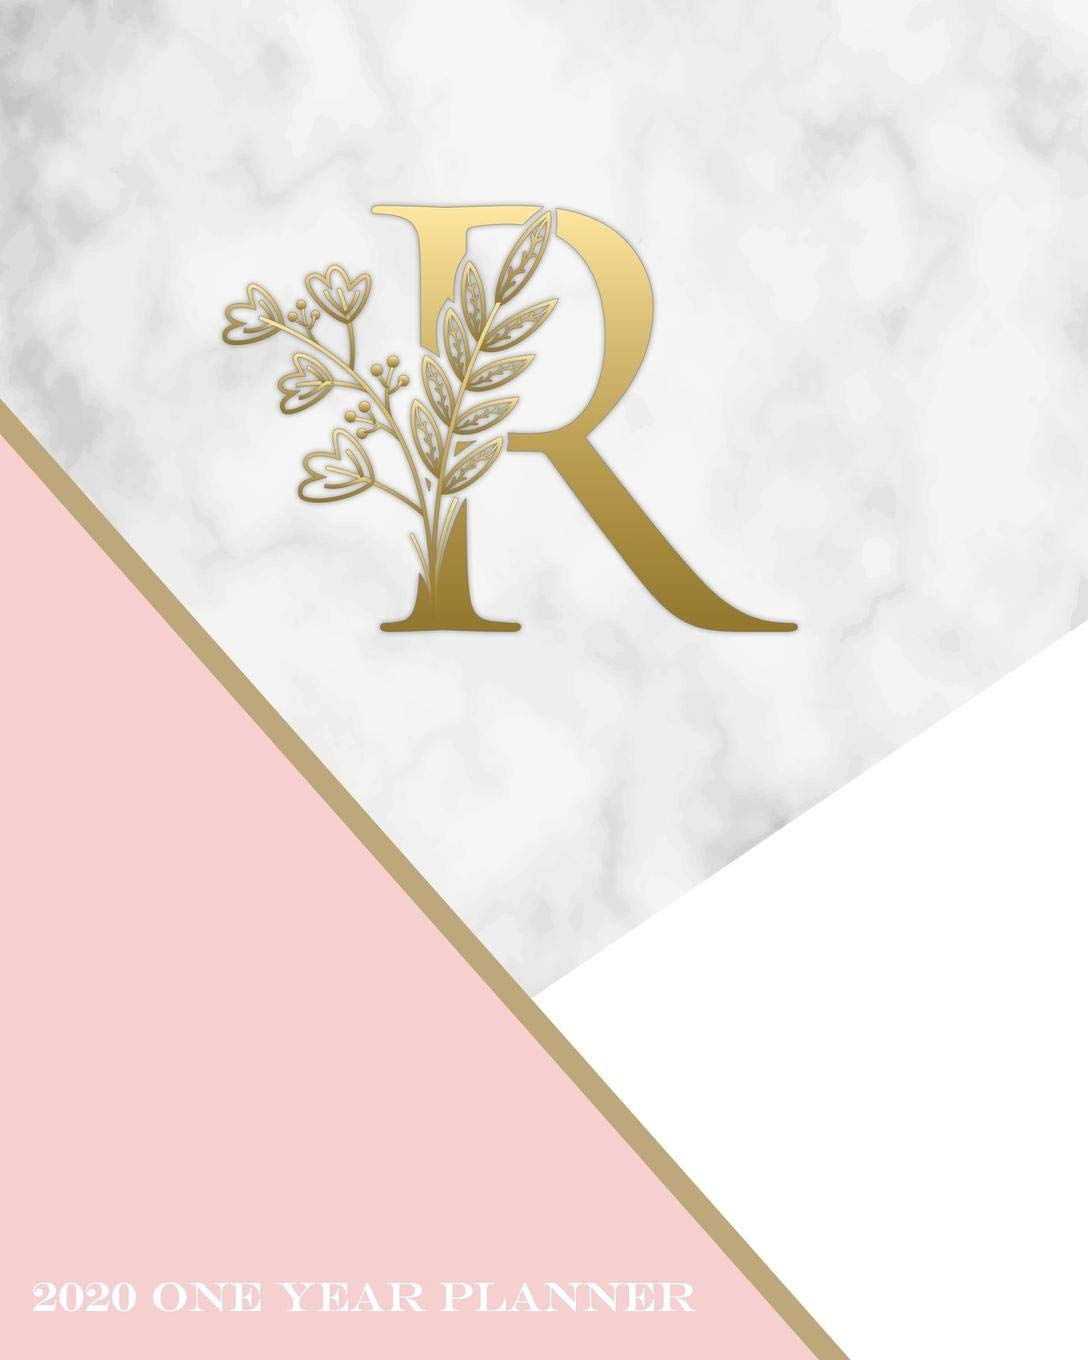 R - 2020 One Year Planner: Elegant Gold Pink and Marble ...